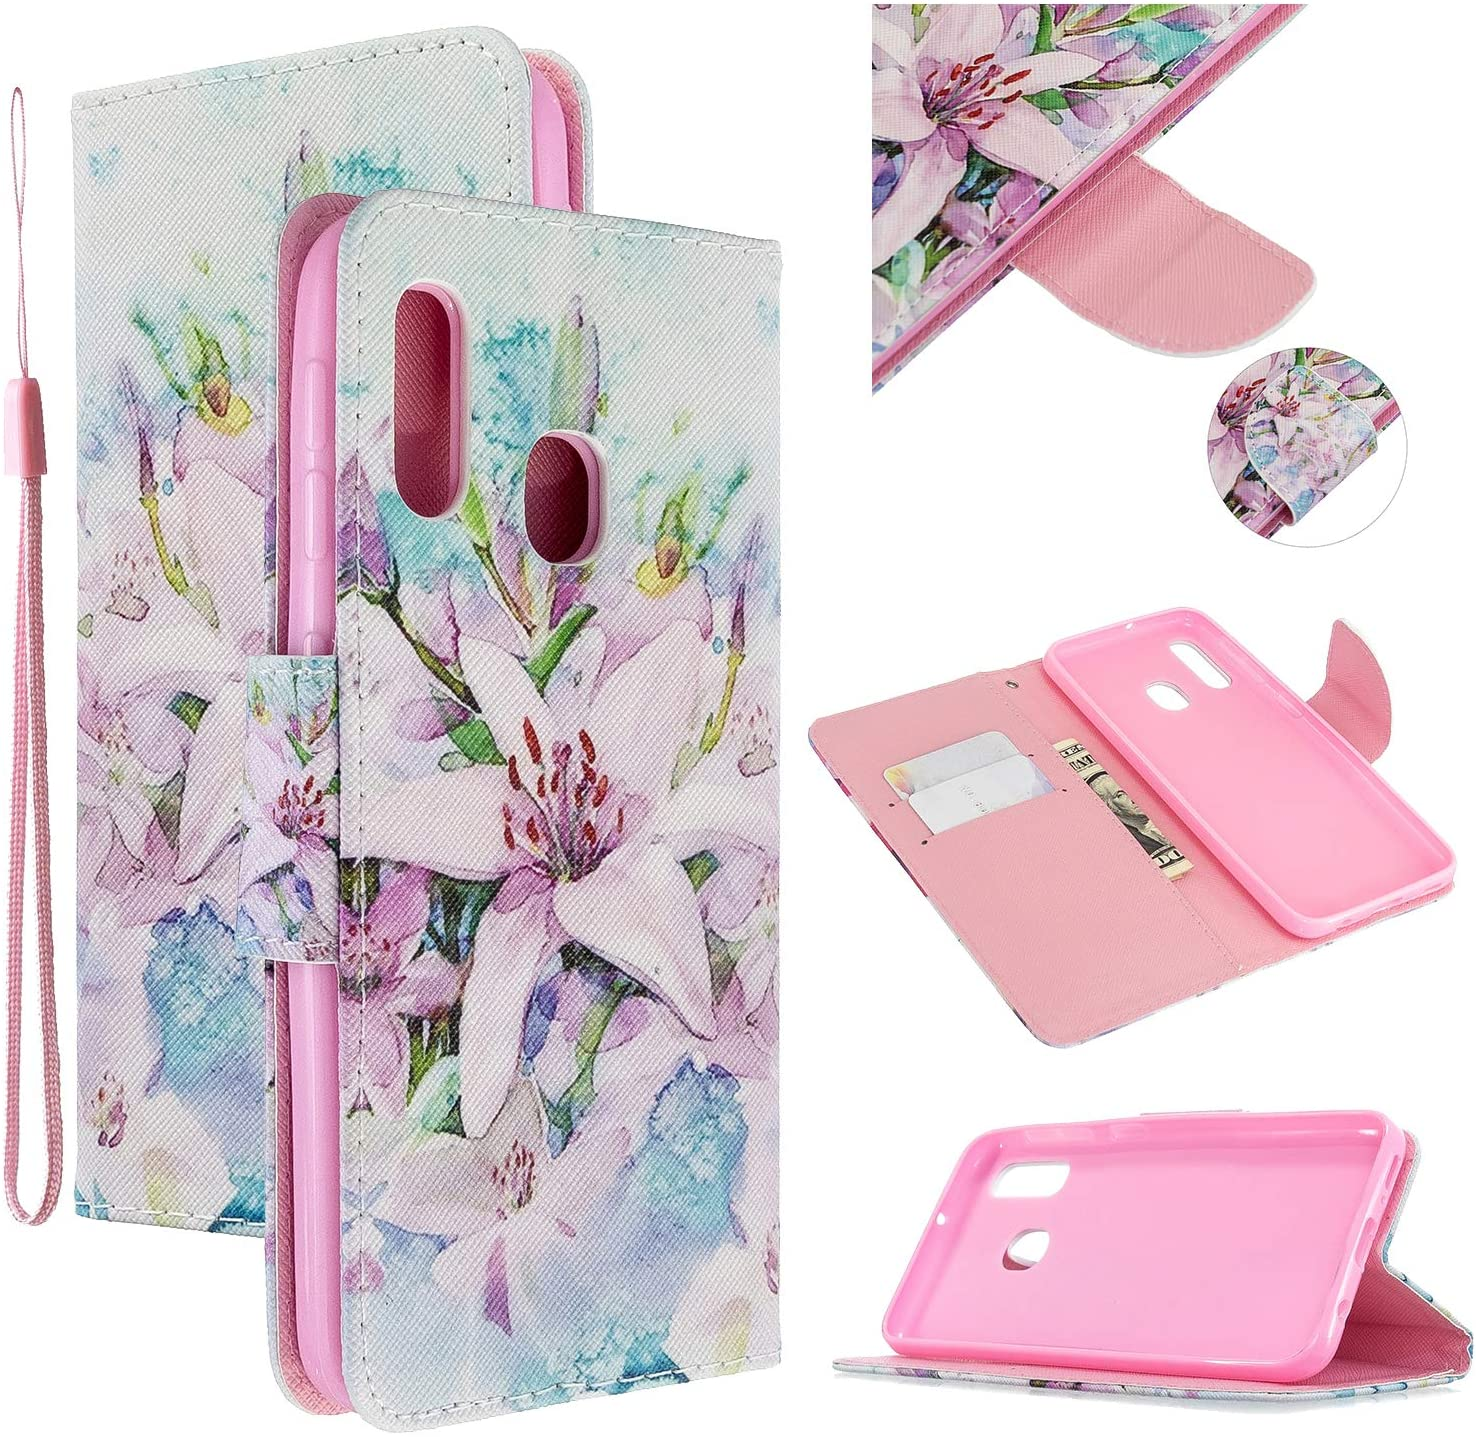 EnjoyCase Colorful Flip Case for Samsung Galaxy A20S,Lily Flower Painted Pu Leather Bookstyle Magnetic Closure Wrist Strap Wallet Case Cover with Stand Function